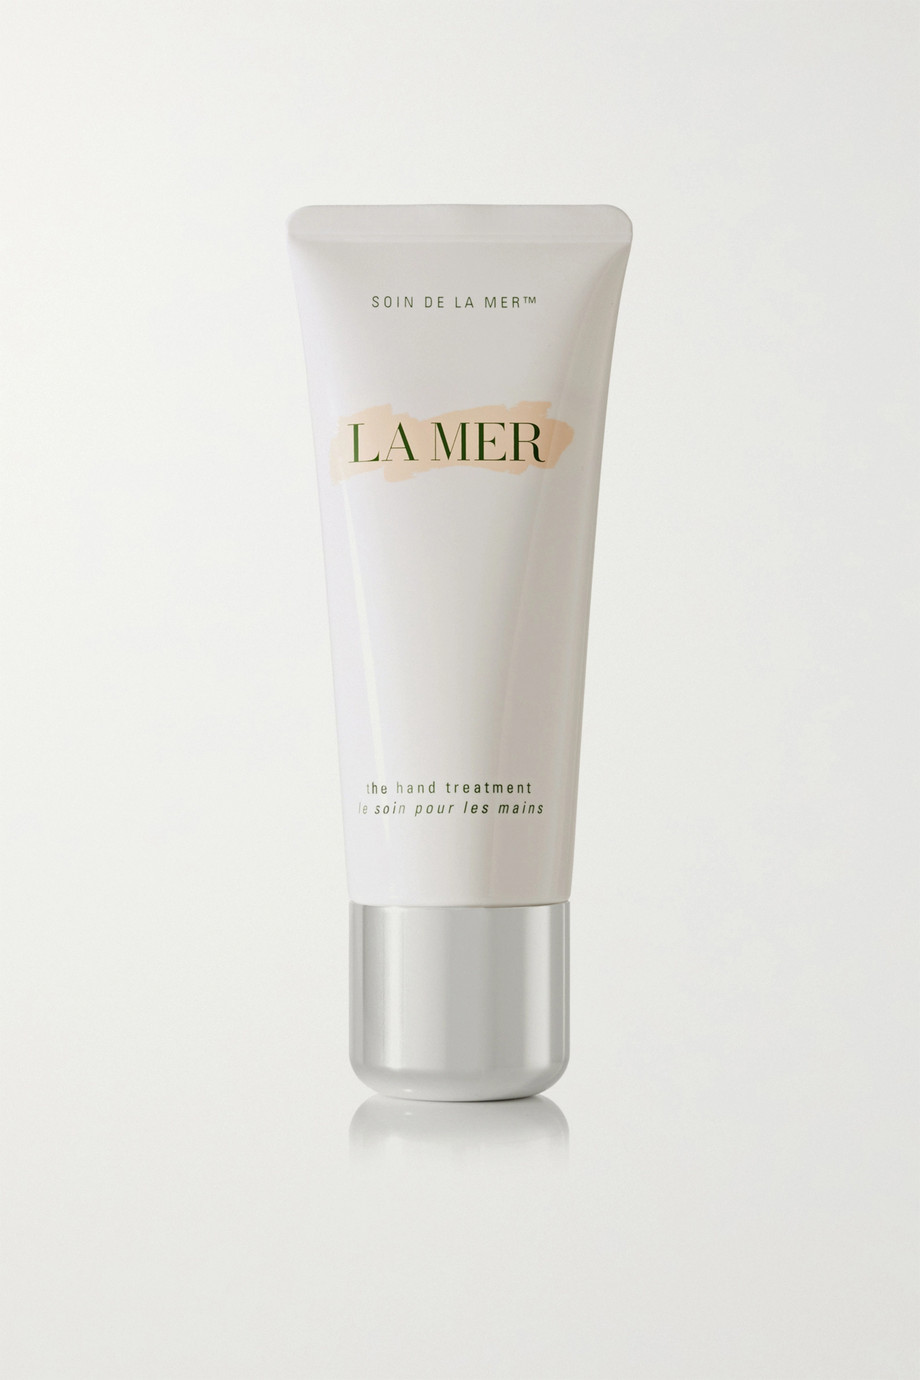 La Mer The Hand Treatment, 100 ml – Handcreme